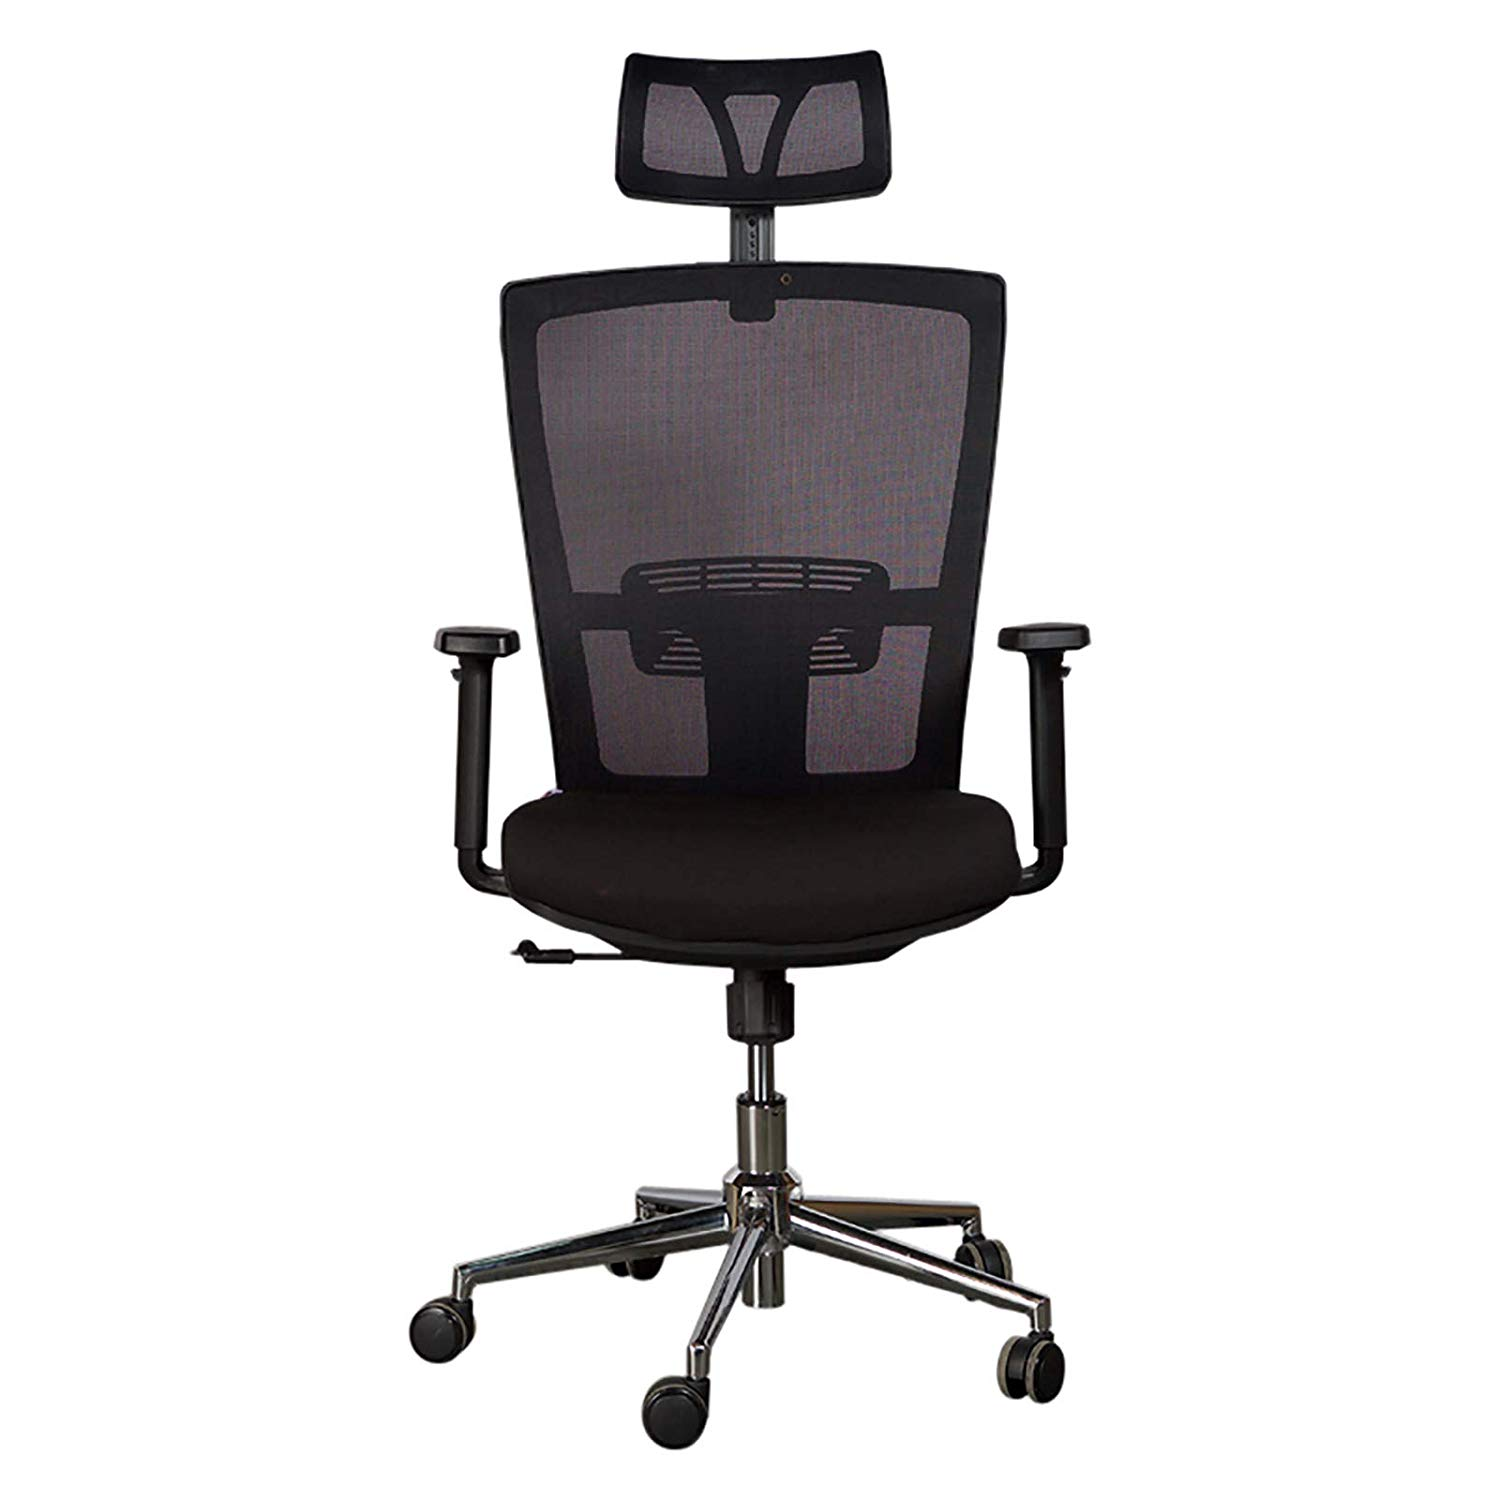 Mahmayi Sleekline T01B High Back Ergonomic Mesh Chair - Black (pc)